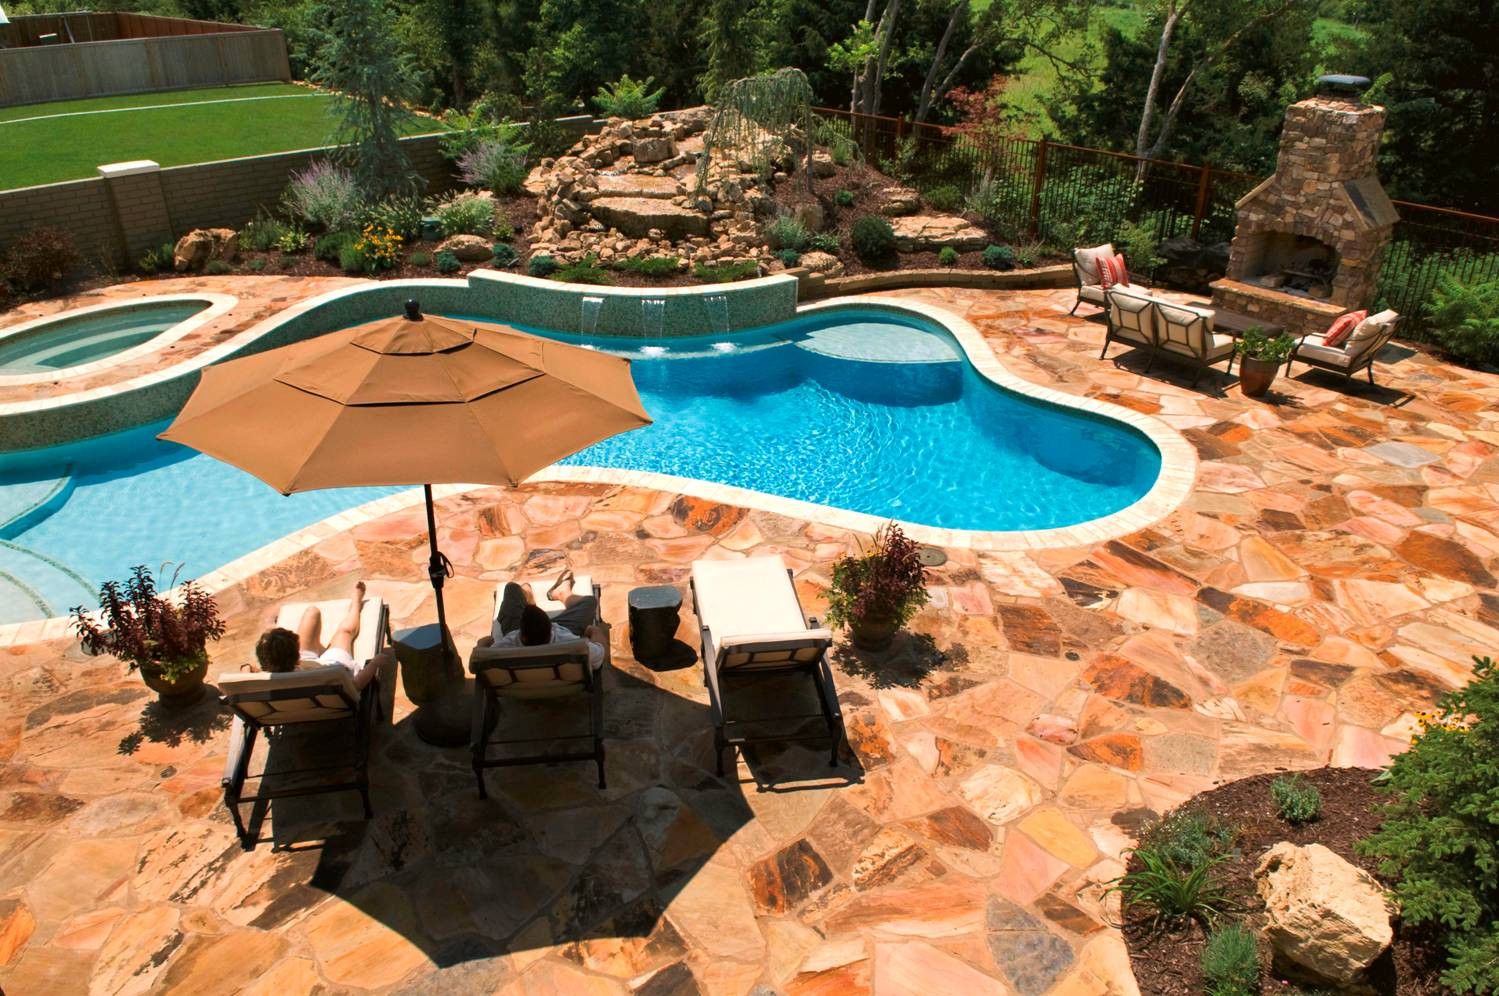 Best ideas about Inground Pool Ideas . Save or Pin Best swimming pool deck ideas Now.